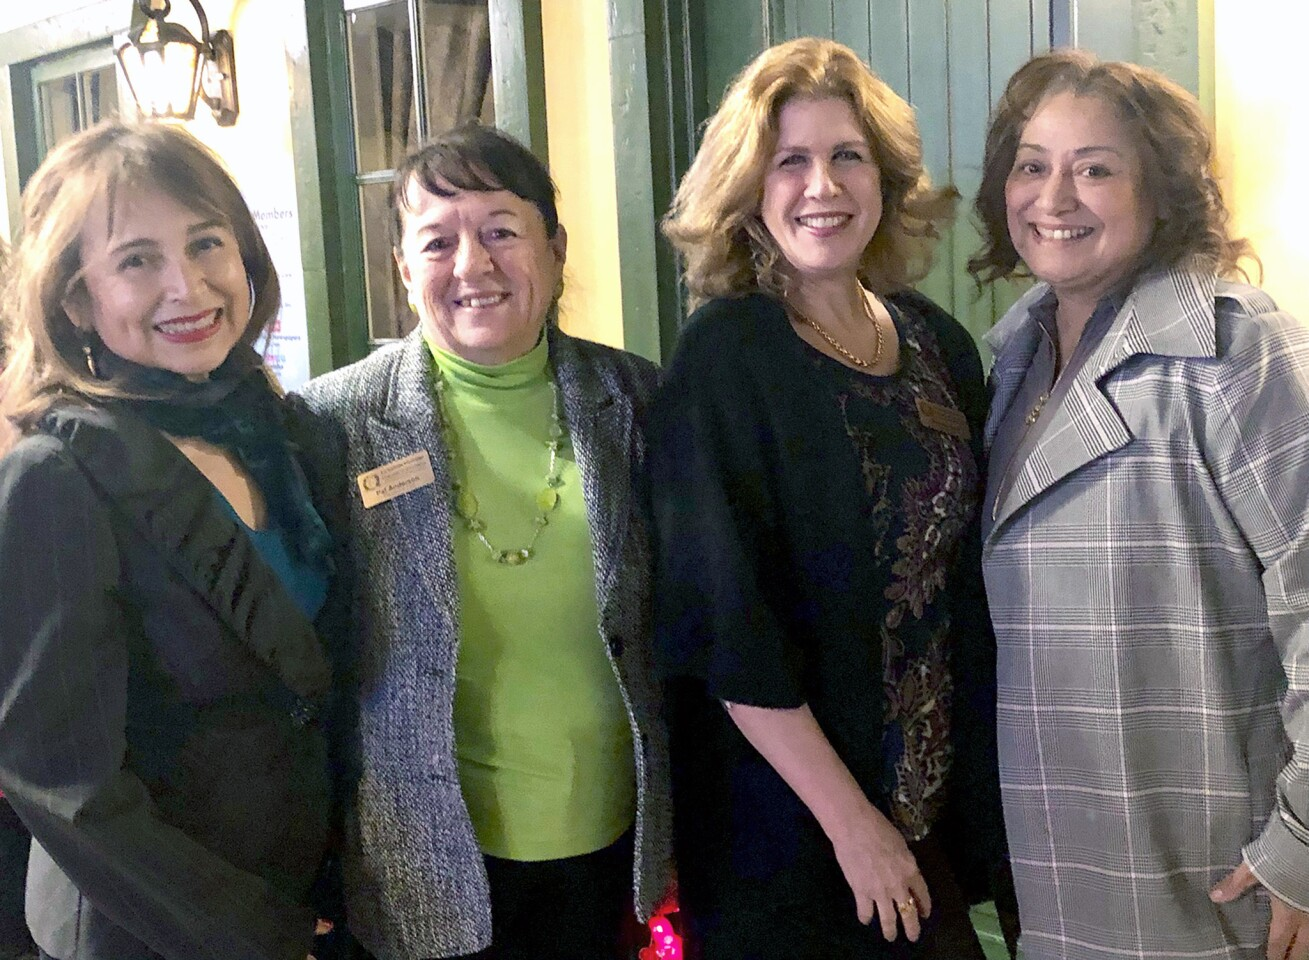 Alice Perez, from left, Pat Anderson, Brenda Gant and Trish McRae catch up on community news during the LCF Chamber mixer at Kobeissi Properties.